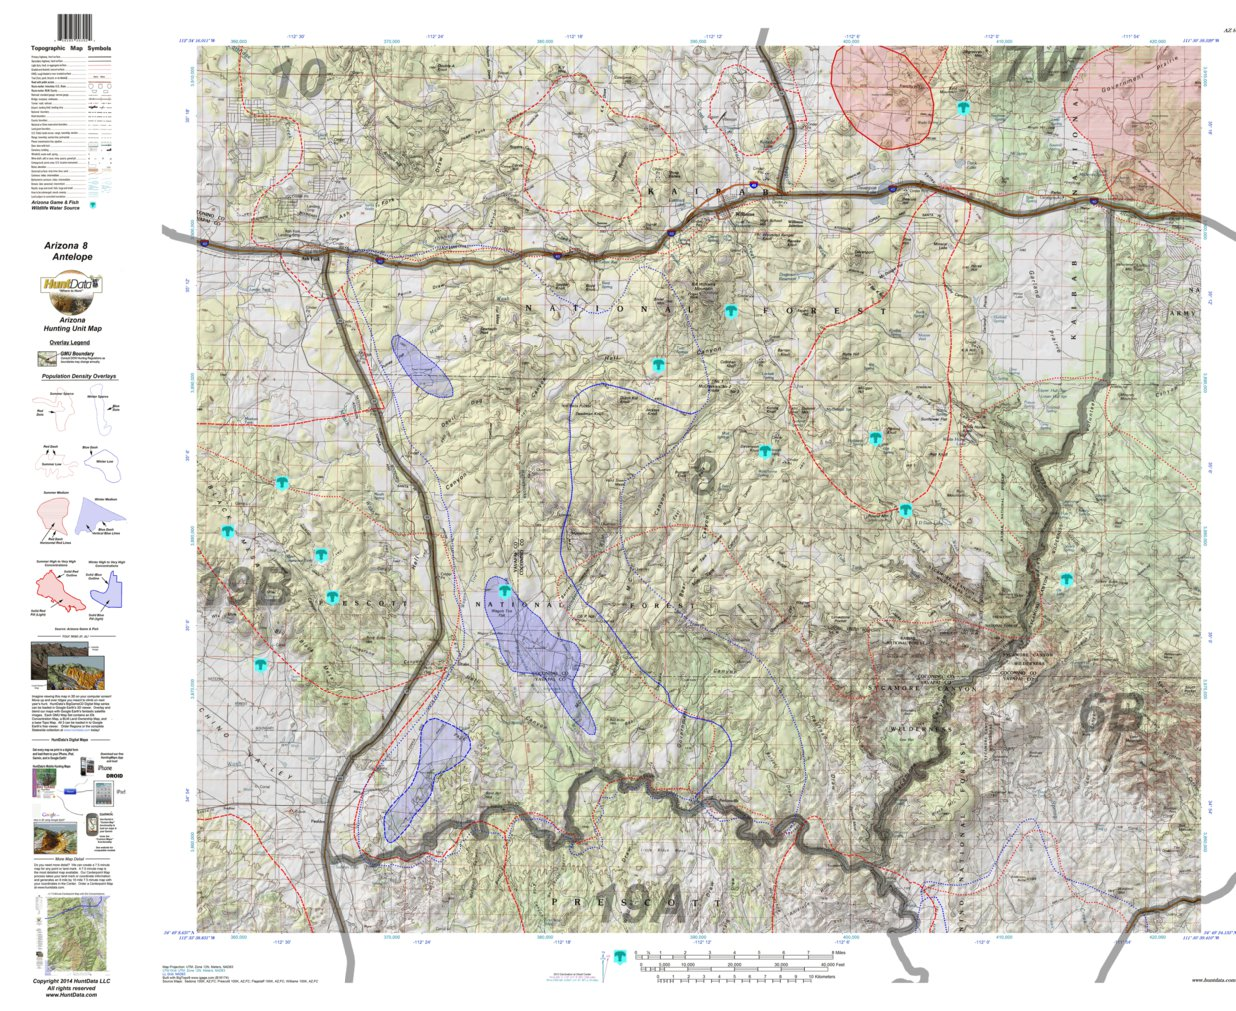 HuntData Arizona Antelope Hunt Unit 8 Game Concentration Map